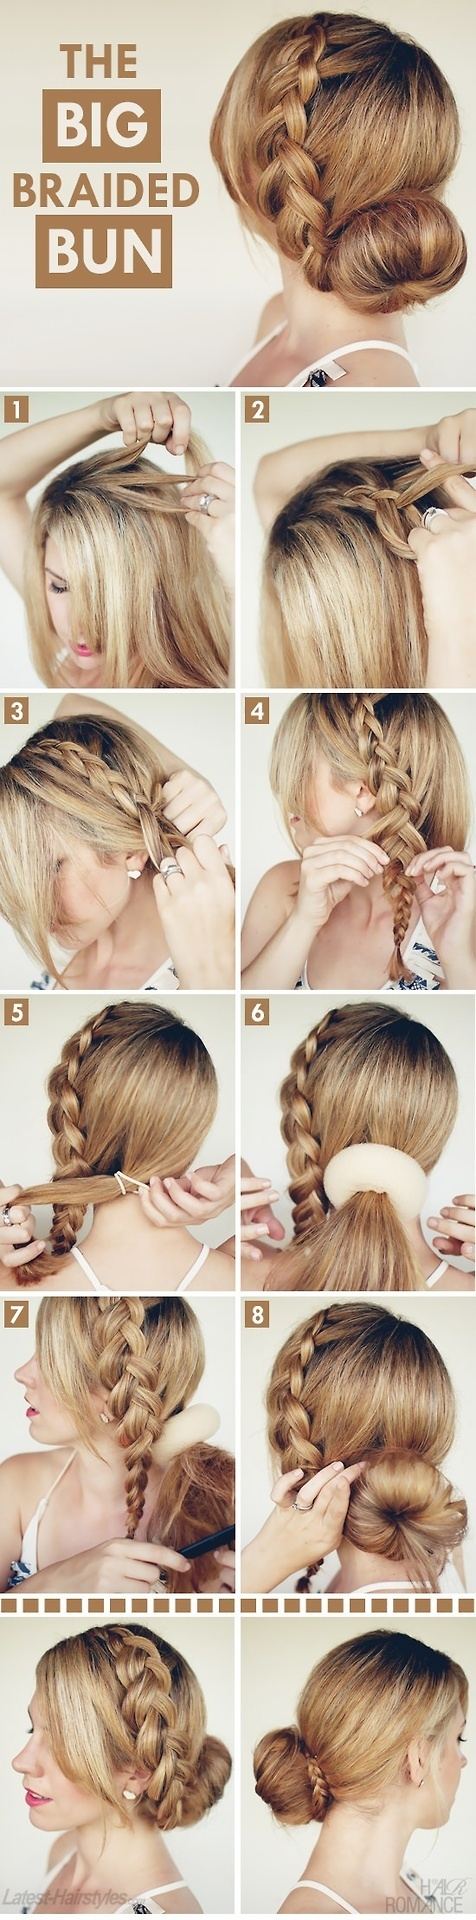 Big Braided Bun